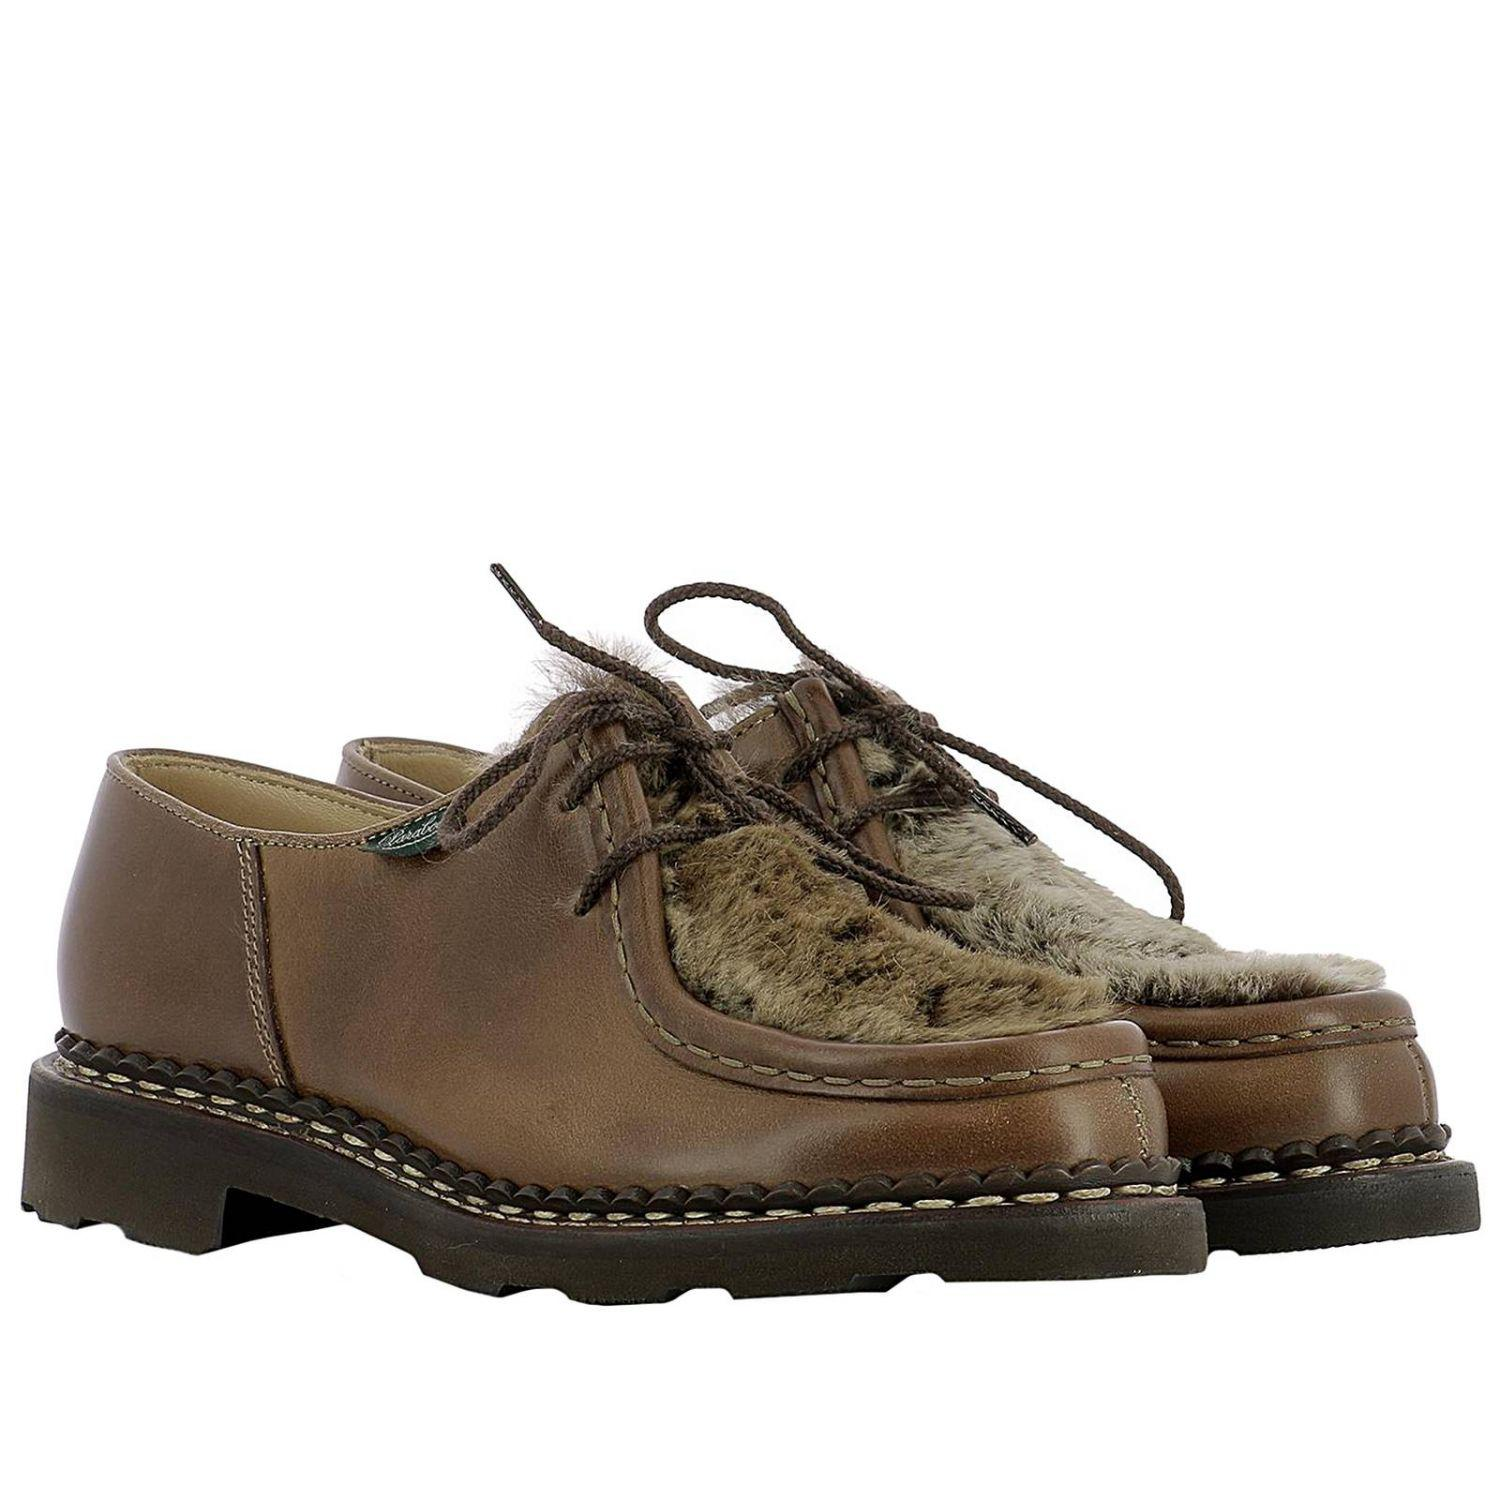 b5b5adbe8e8edf Paraboot Oxford Shoes Women in Brown - Lyst